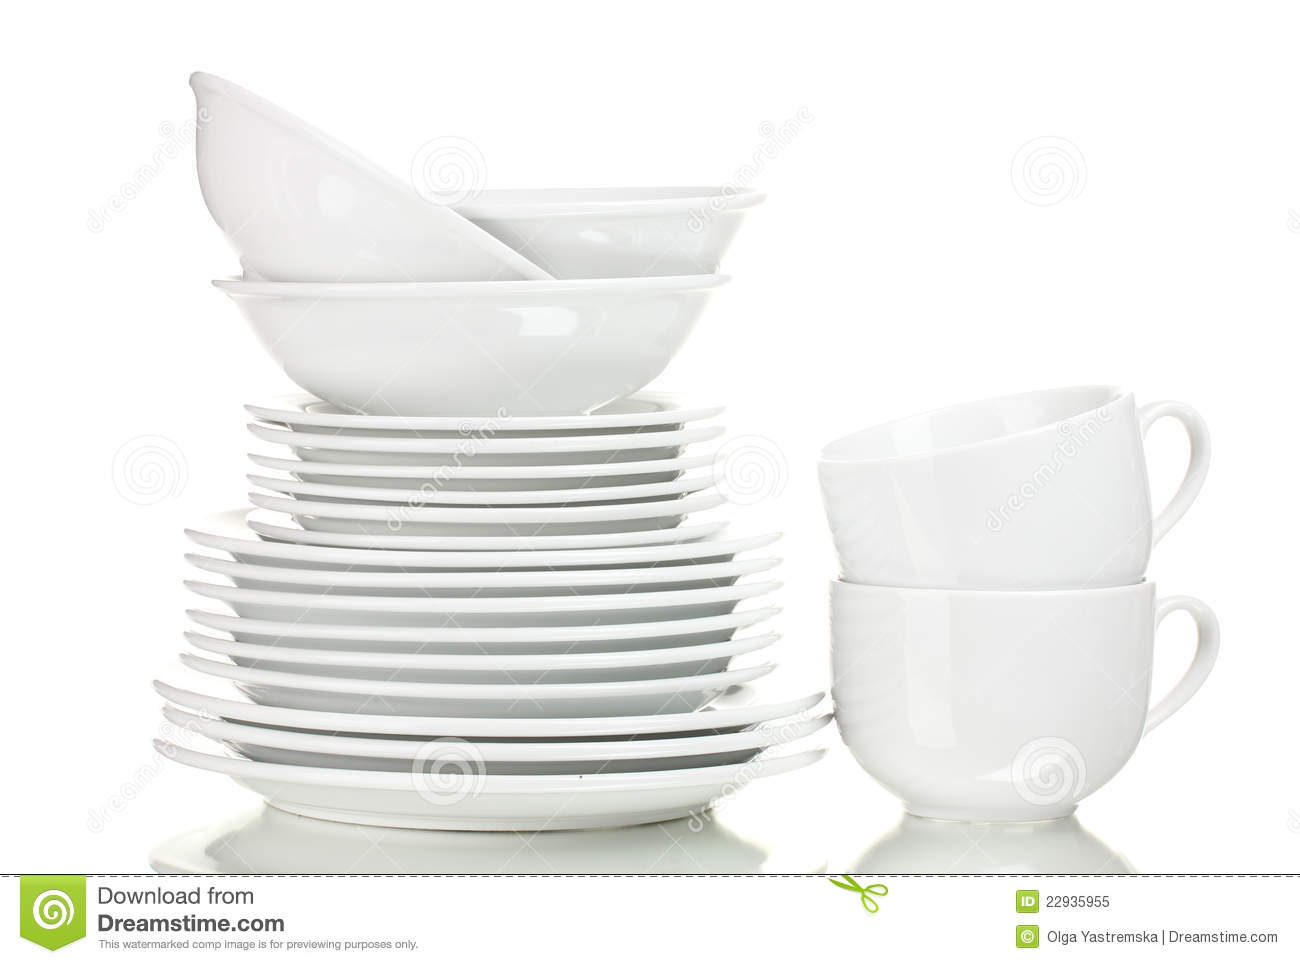 Clean Plates And Cups Royalty Free Stock Photo Image  : clean plates cups 22935955 from dreamstime.com size 1300 x 964 jpeg 65kB